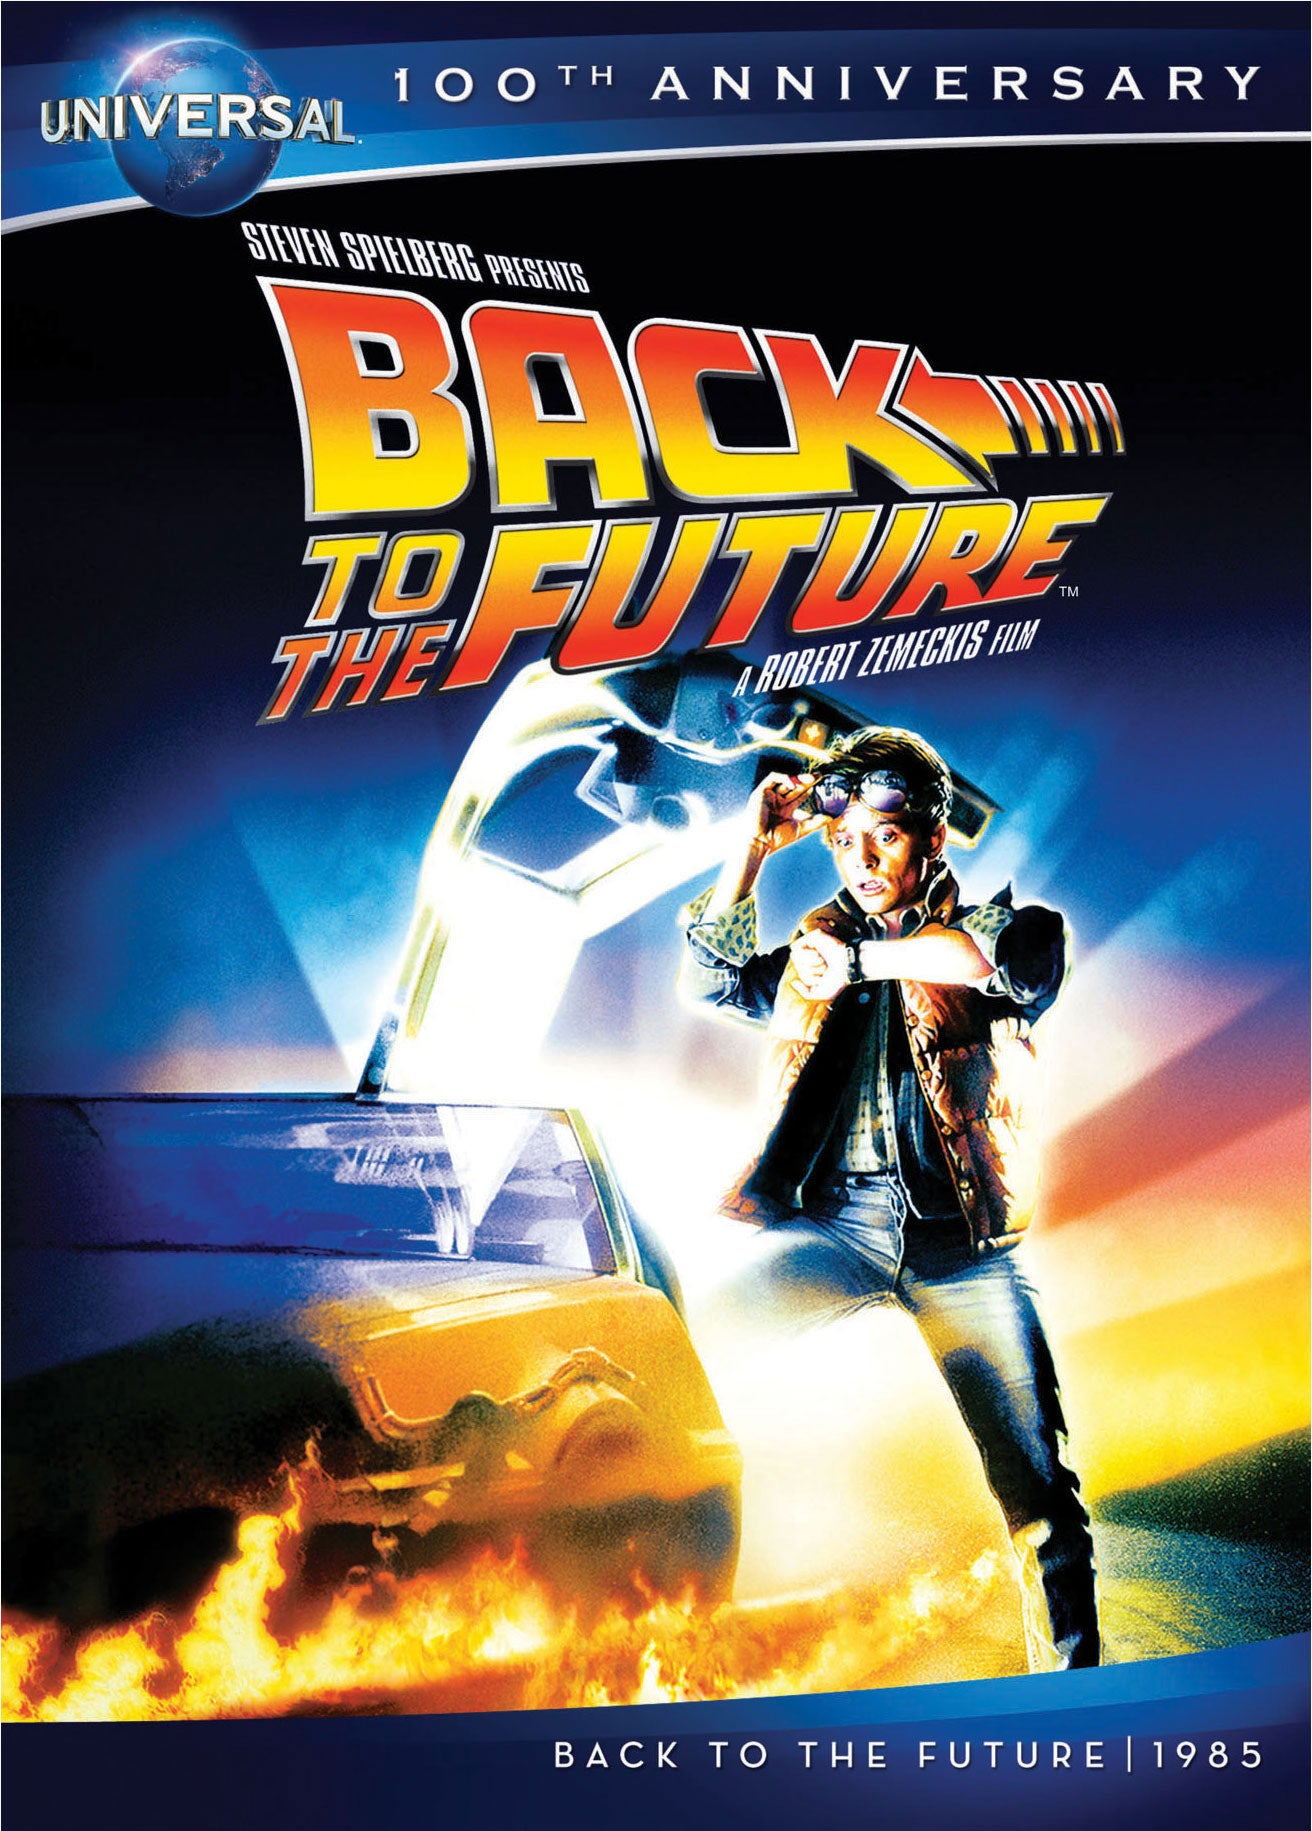 Back to the Future - Universal's 100th Anniversary includes Digital Copy (DVD)